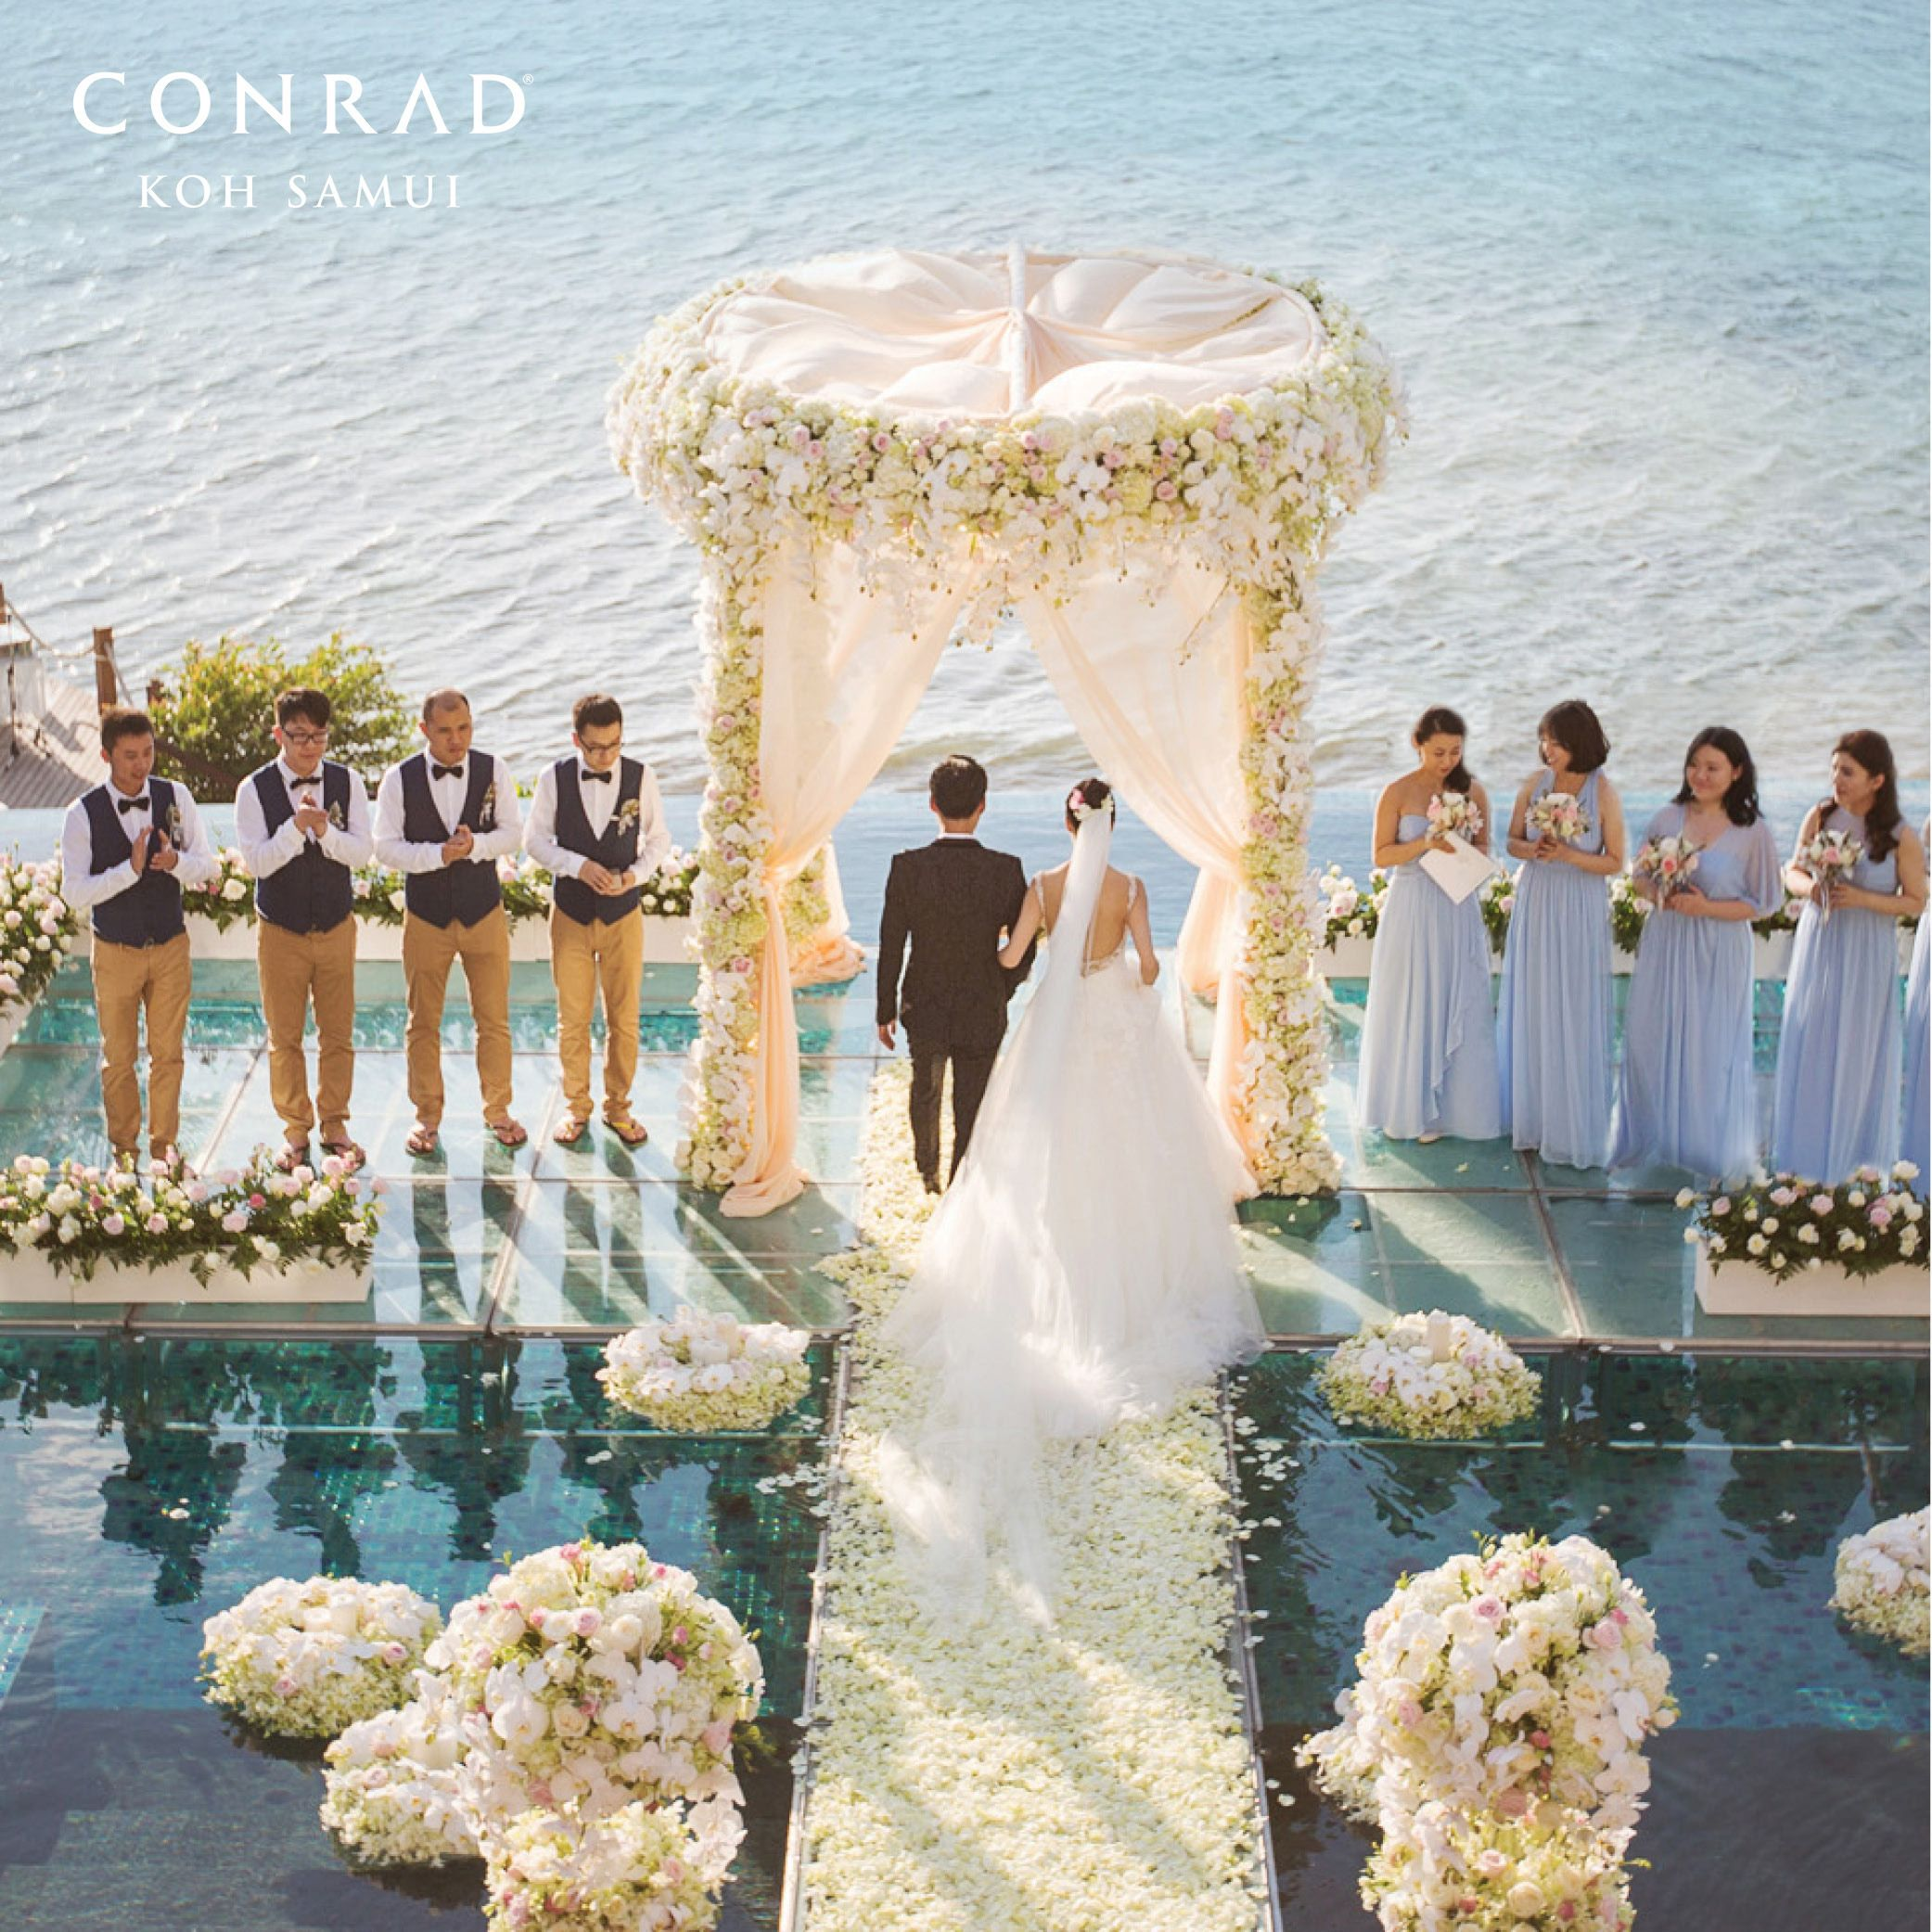 Belongil Beach Wedding Ceremony: Exchange #wedding Vows On The Idyllic Tropical #beach